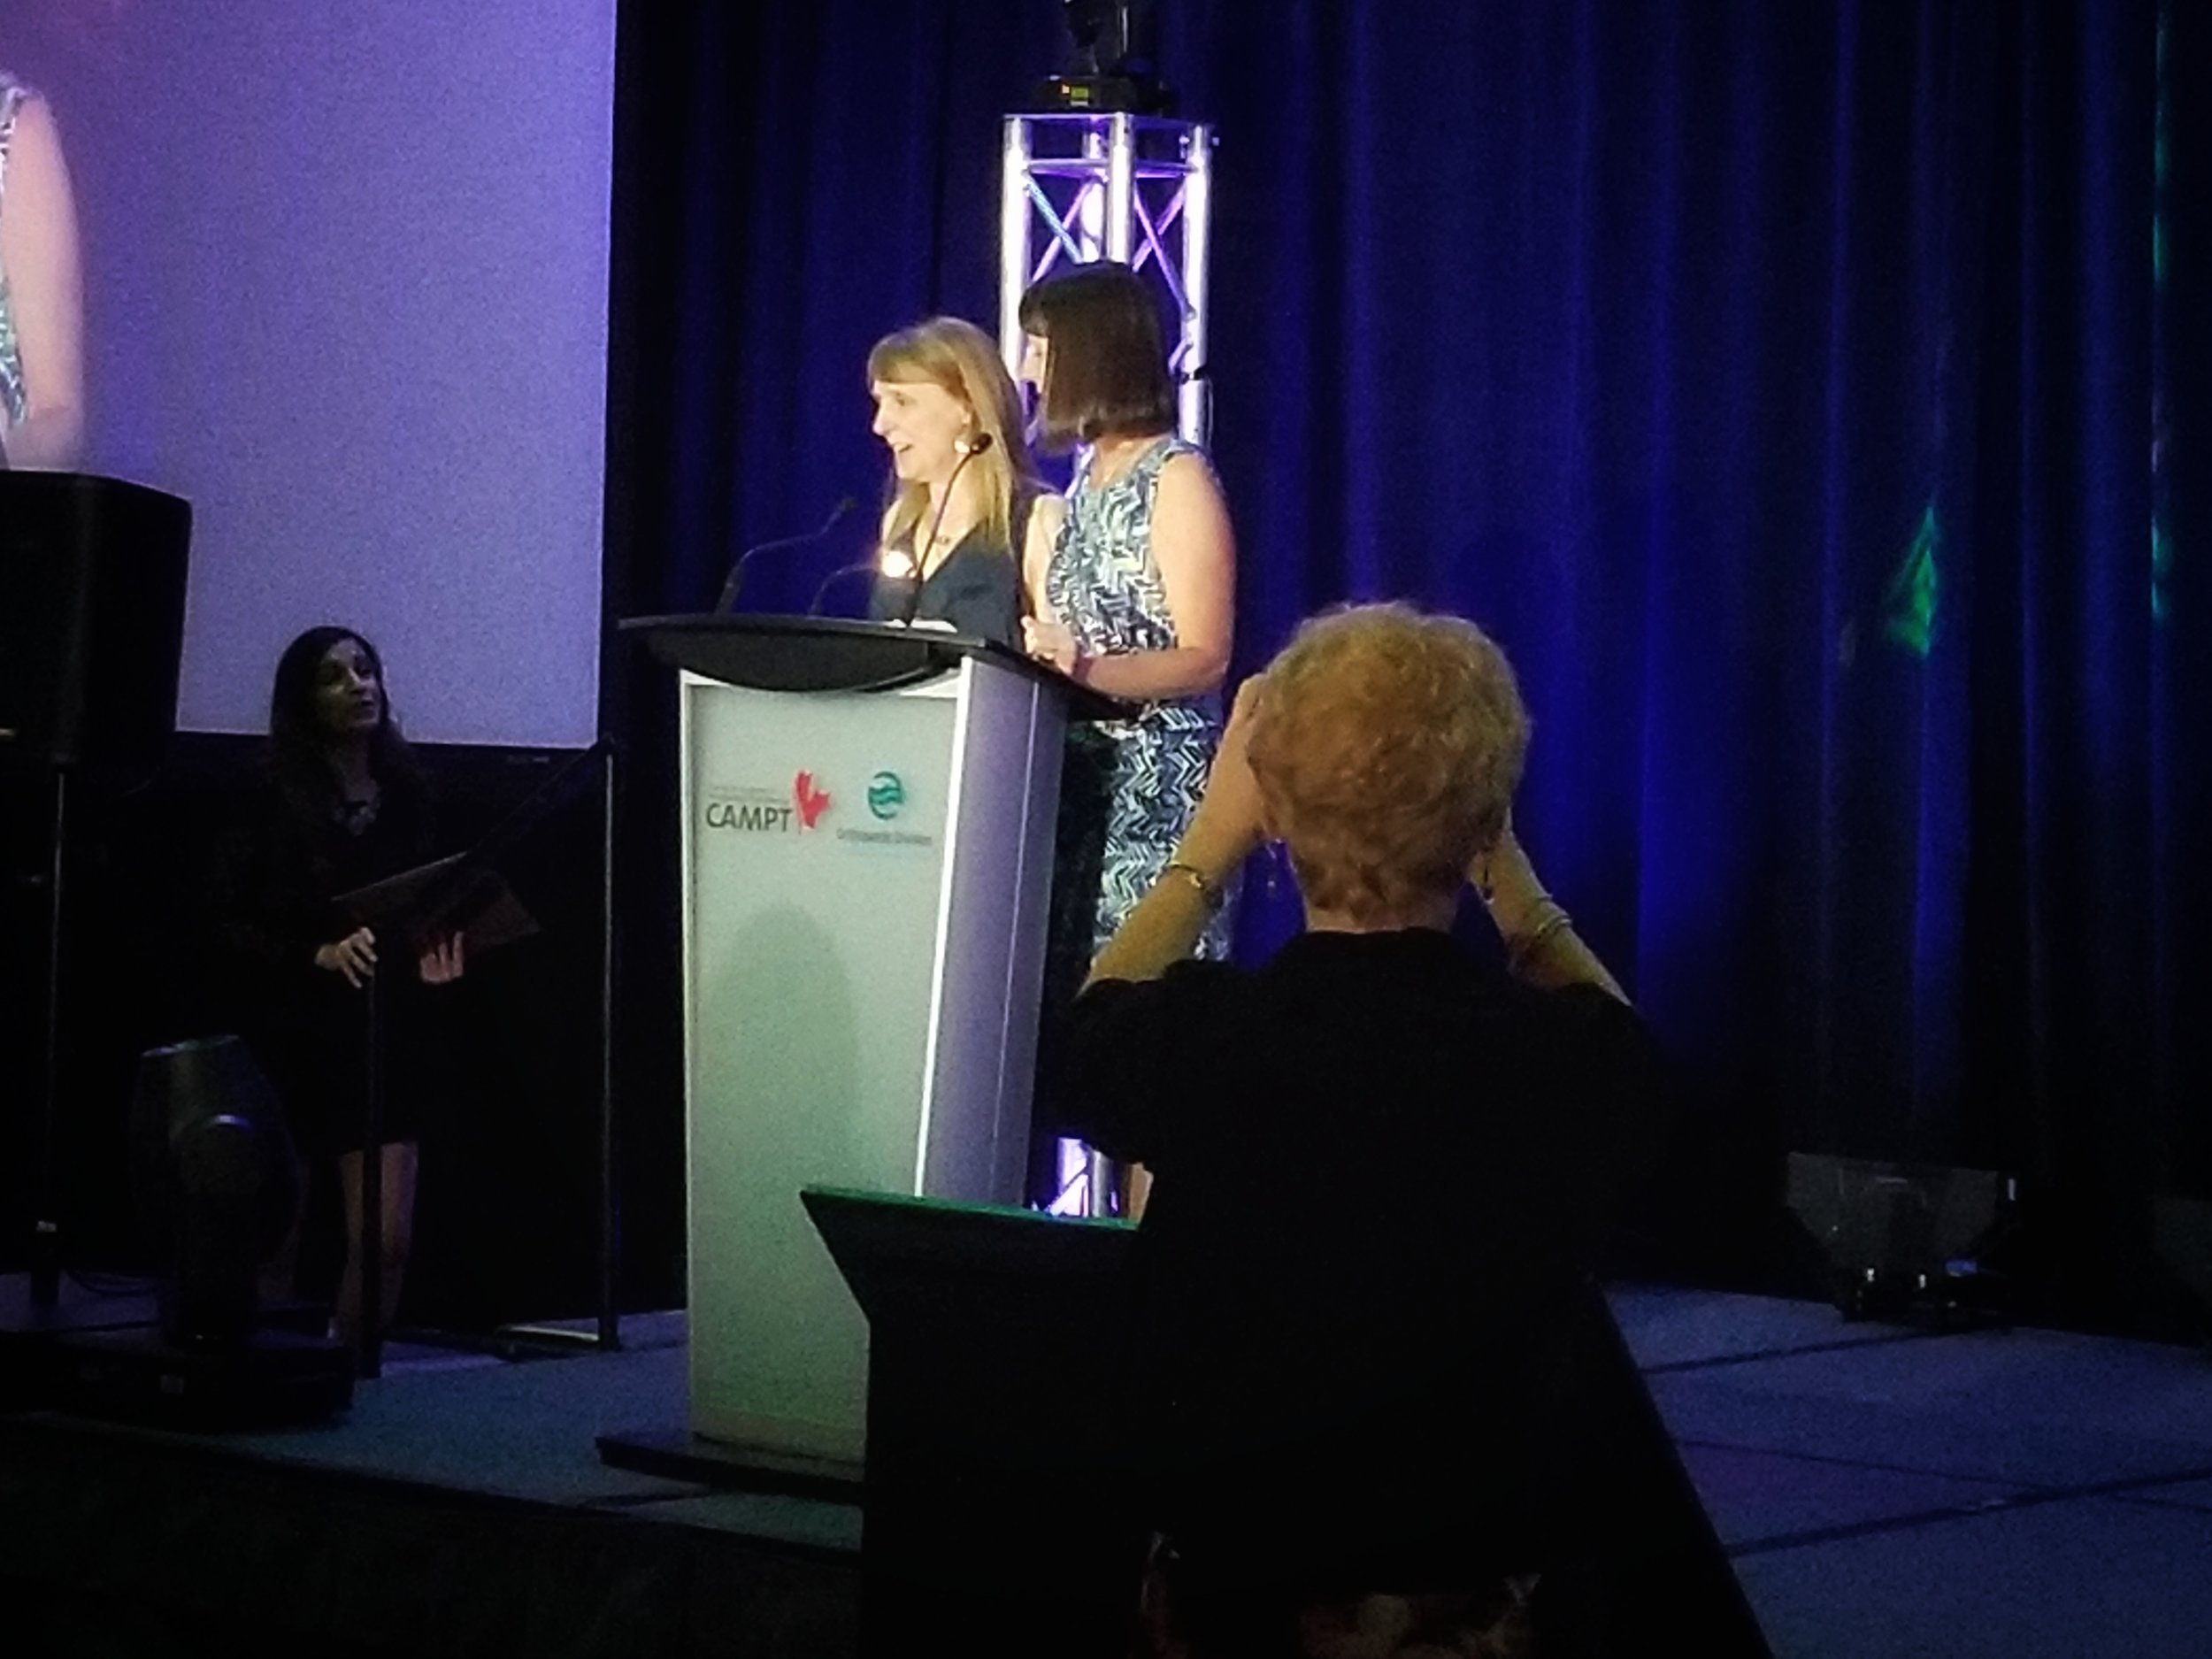 Lenerdene receiving the Golden Hands Award, given for her contributions and excellent in manual therapy in Canada.